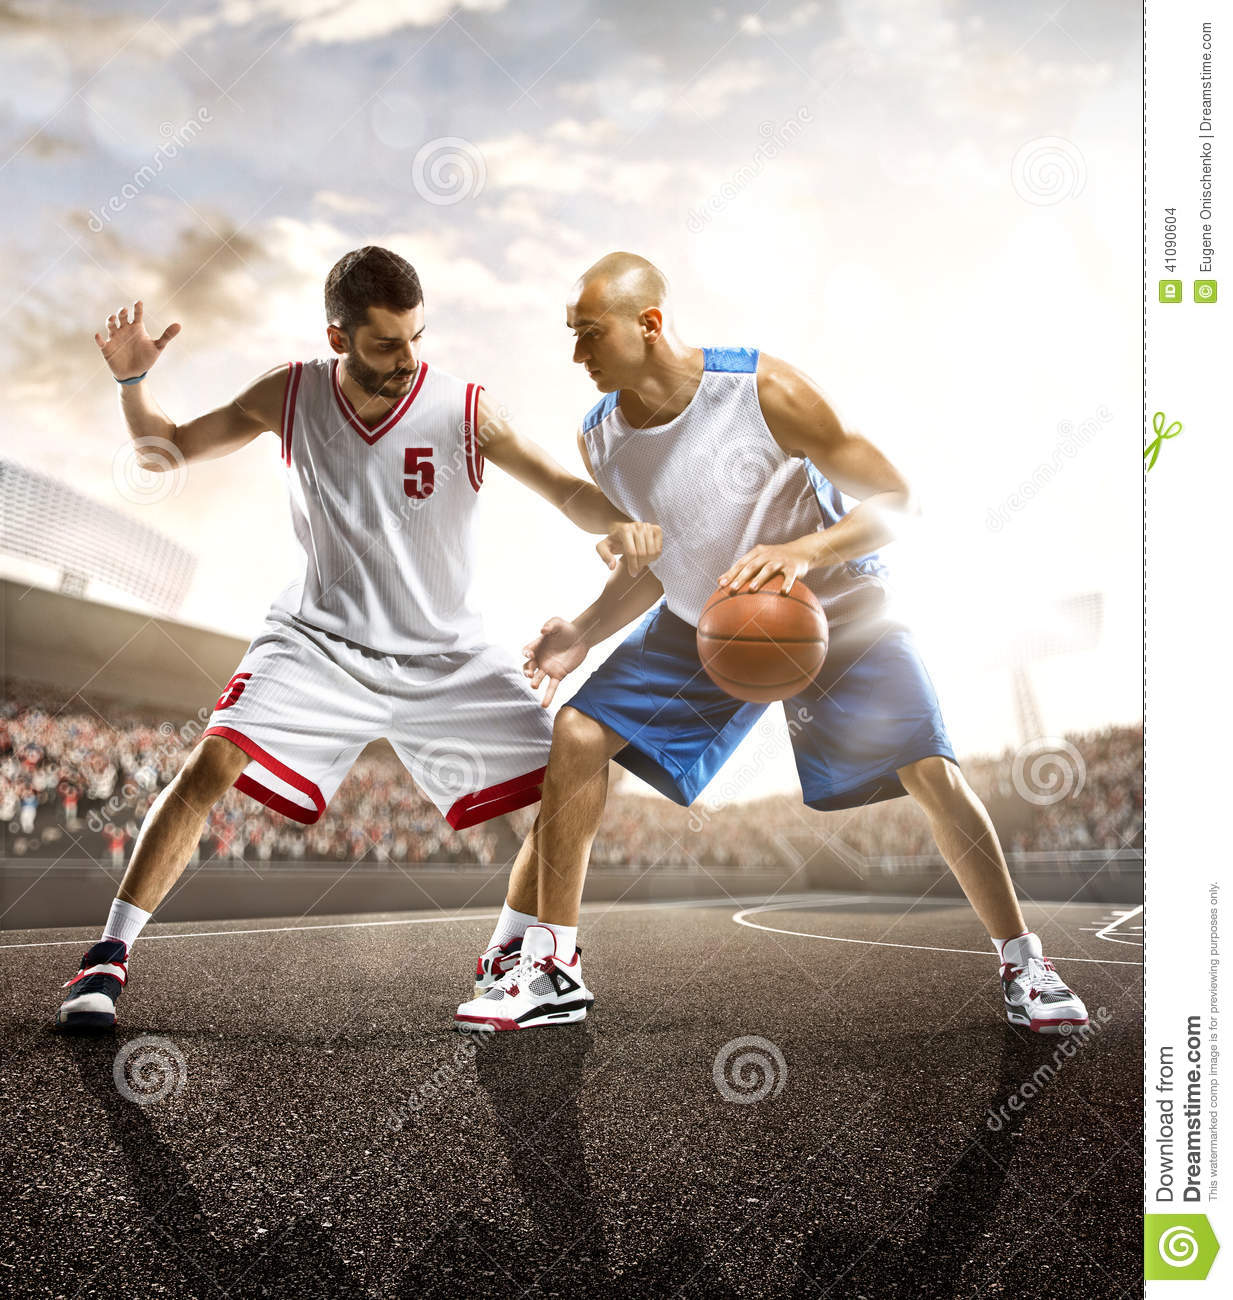 Basketball Player in action